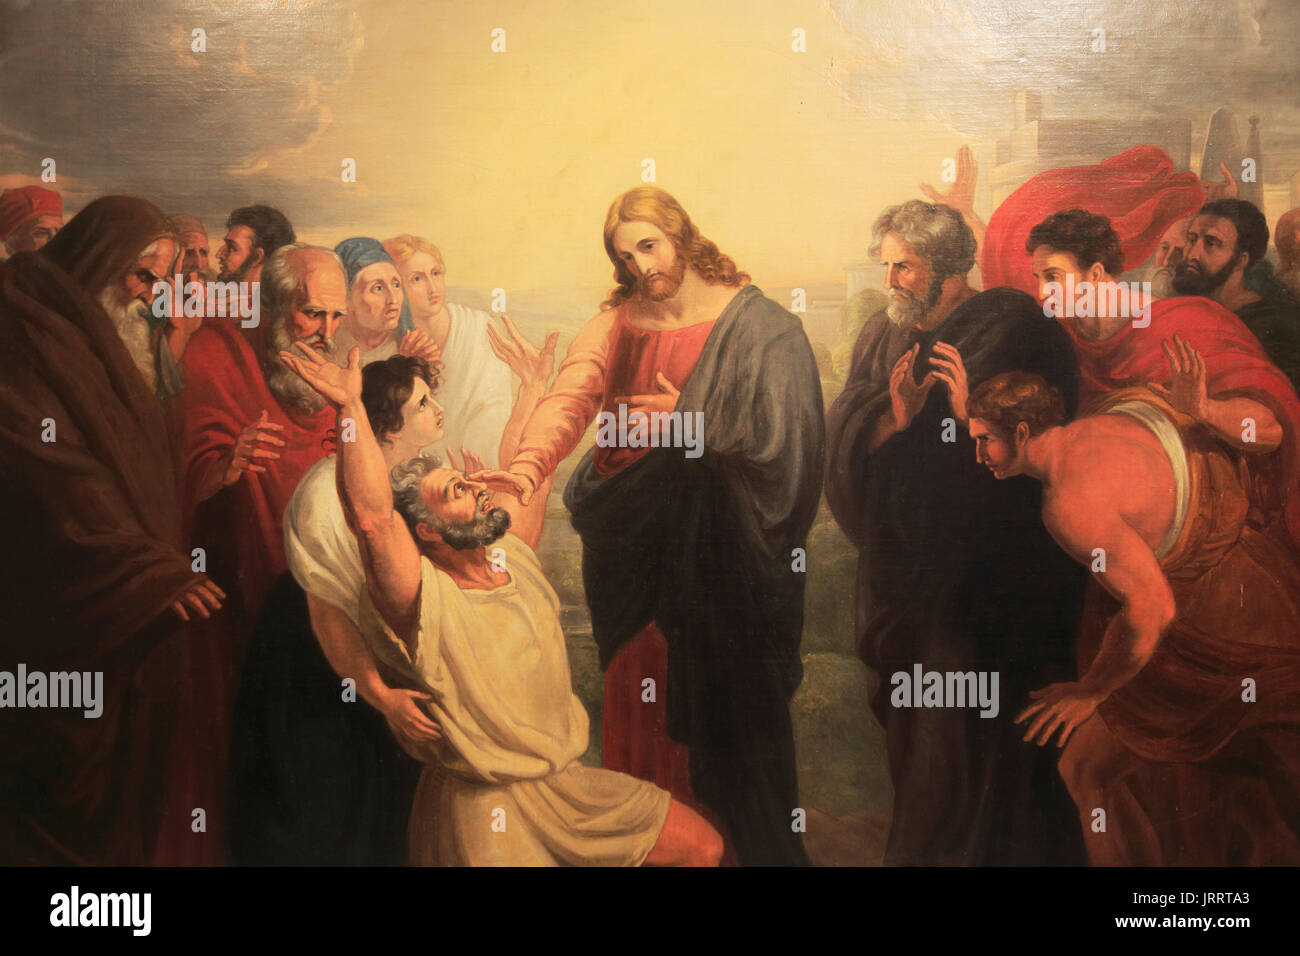 'Christ Healing the Blind Man' painting by Benjamin West 1738-1820, Church of Saint Mary Magdelene, Sternfield, Suffolk, England, UK - Stock Image